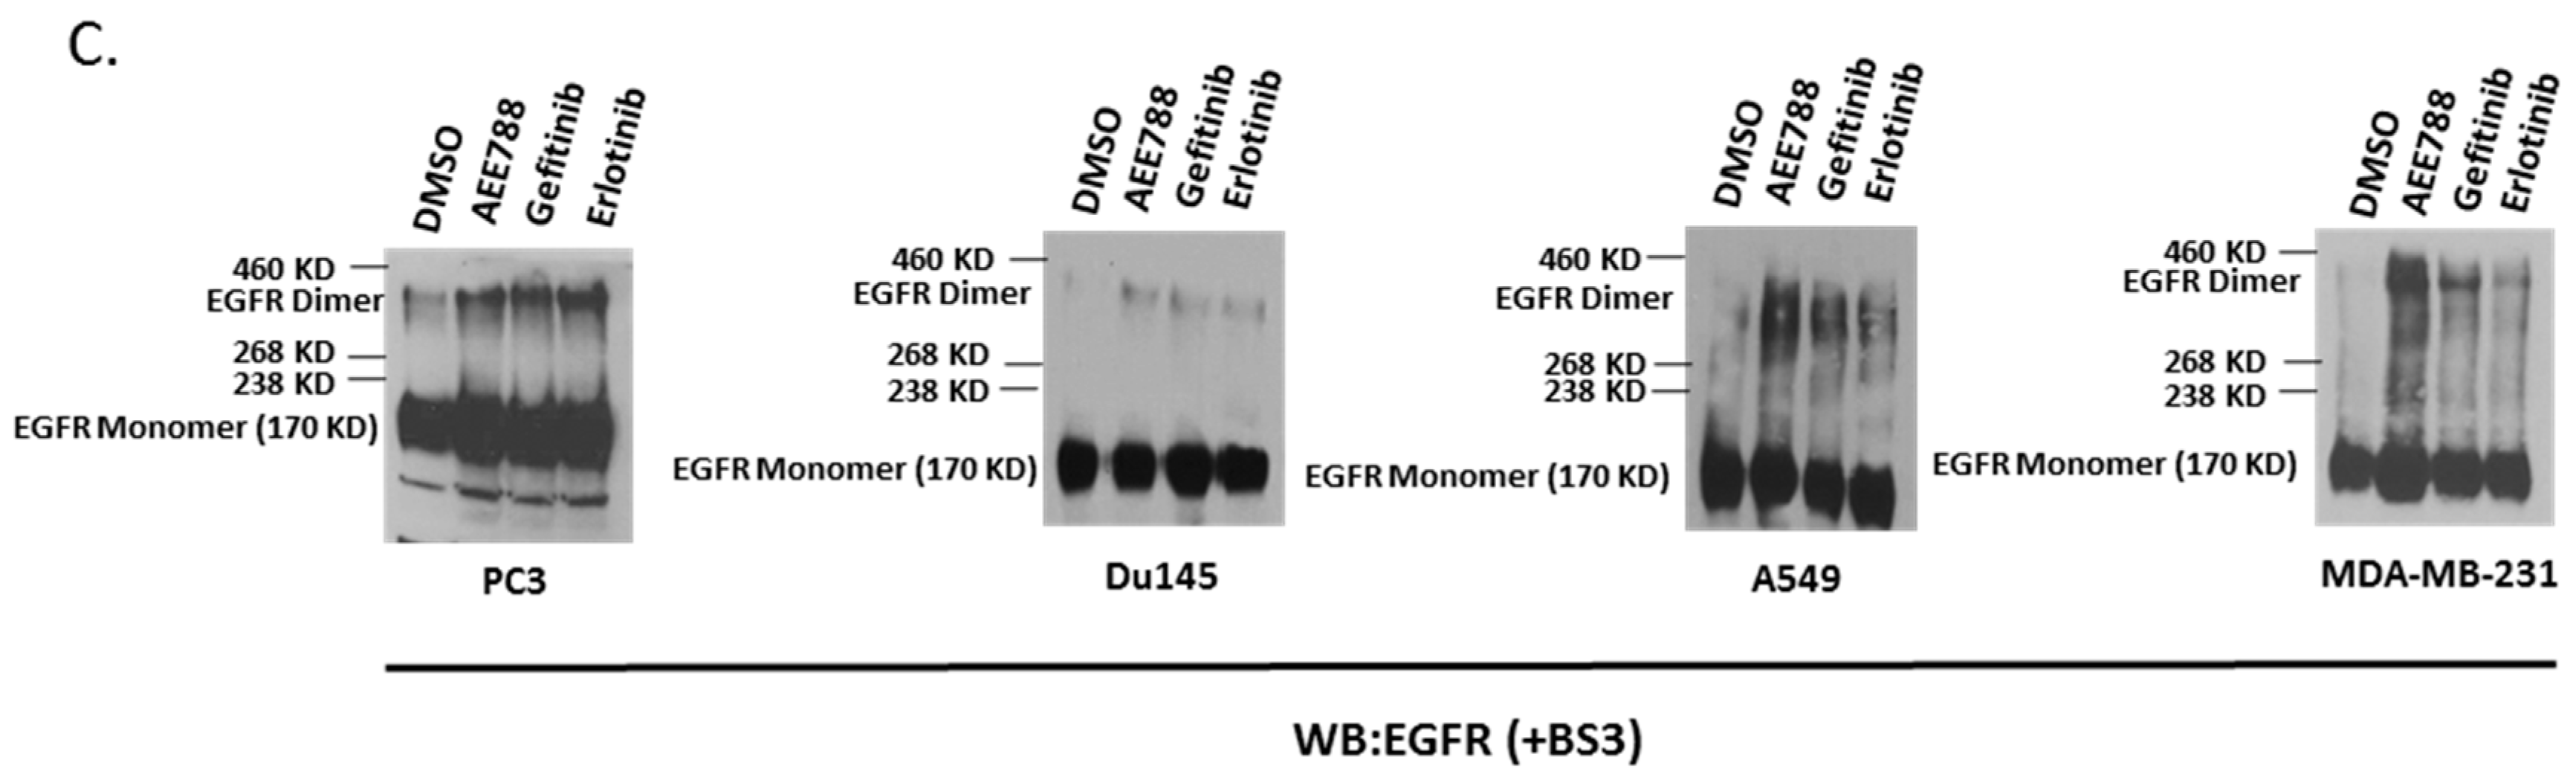 IJMS | Free Full-Text | Kinase-Inactivated EGFR Is Required